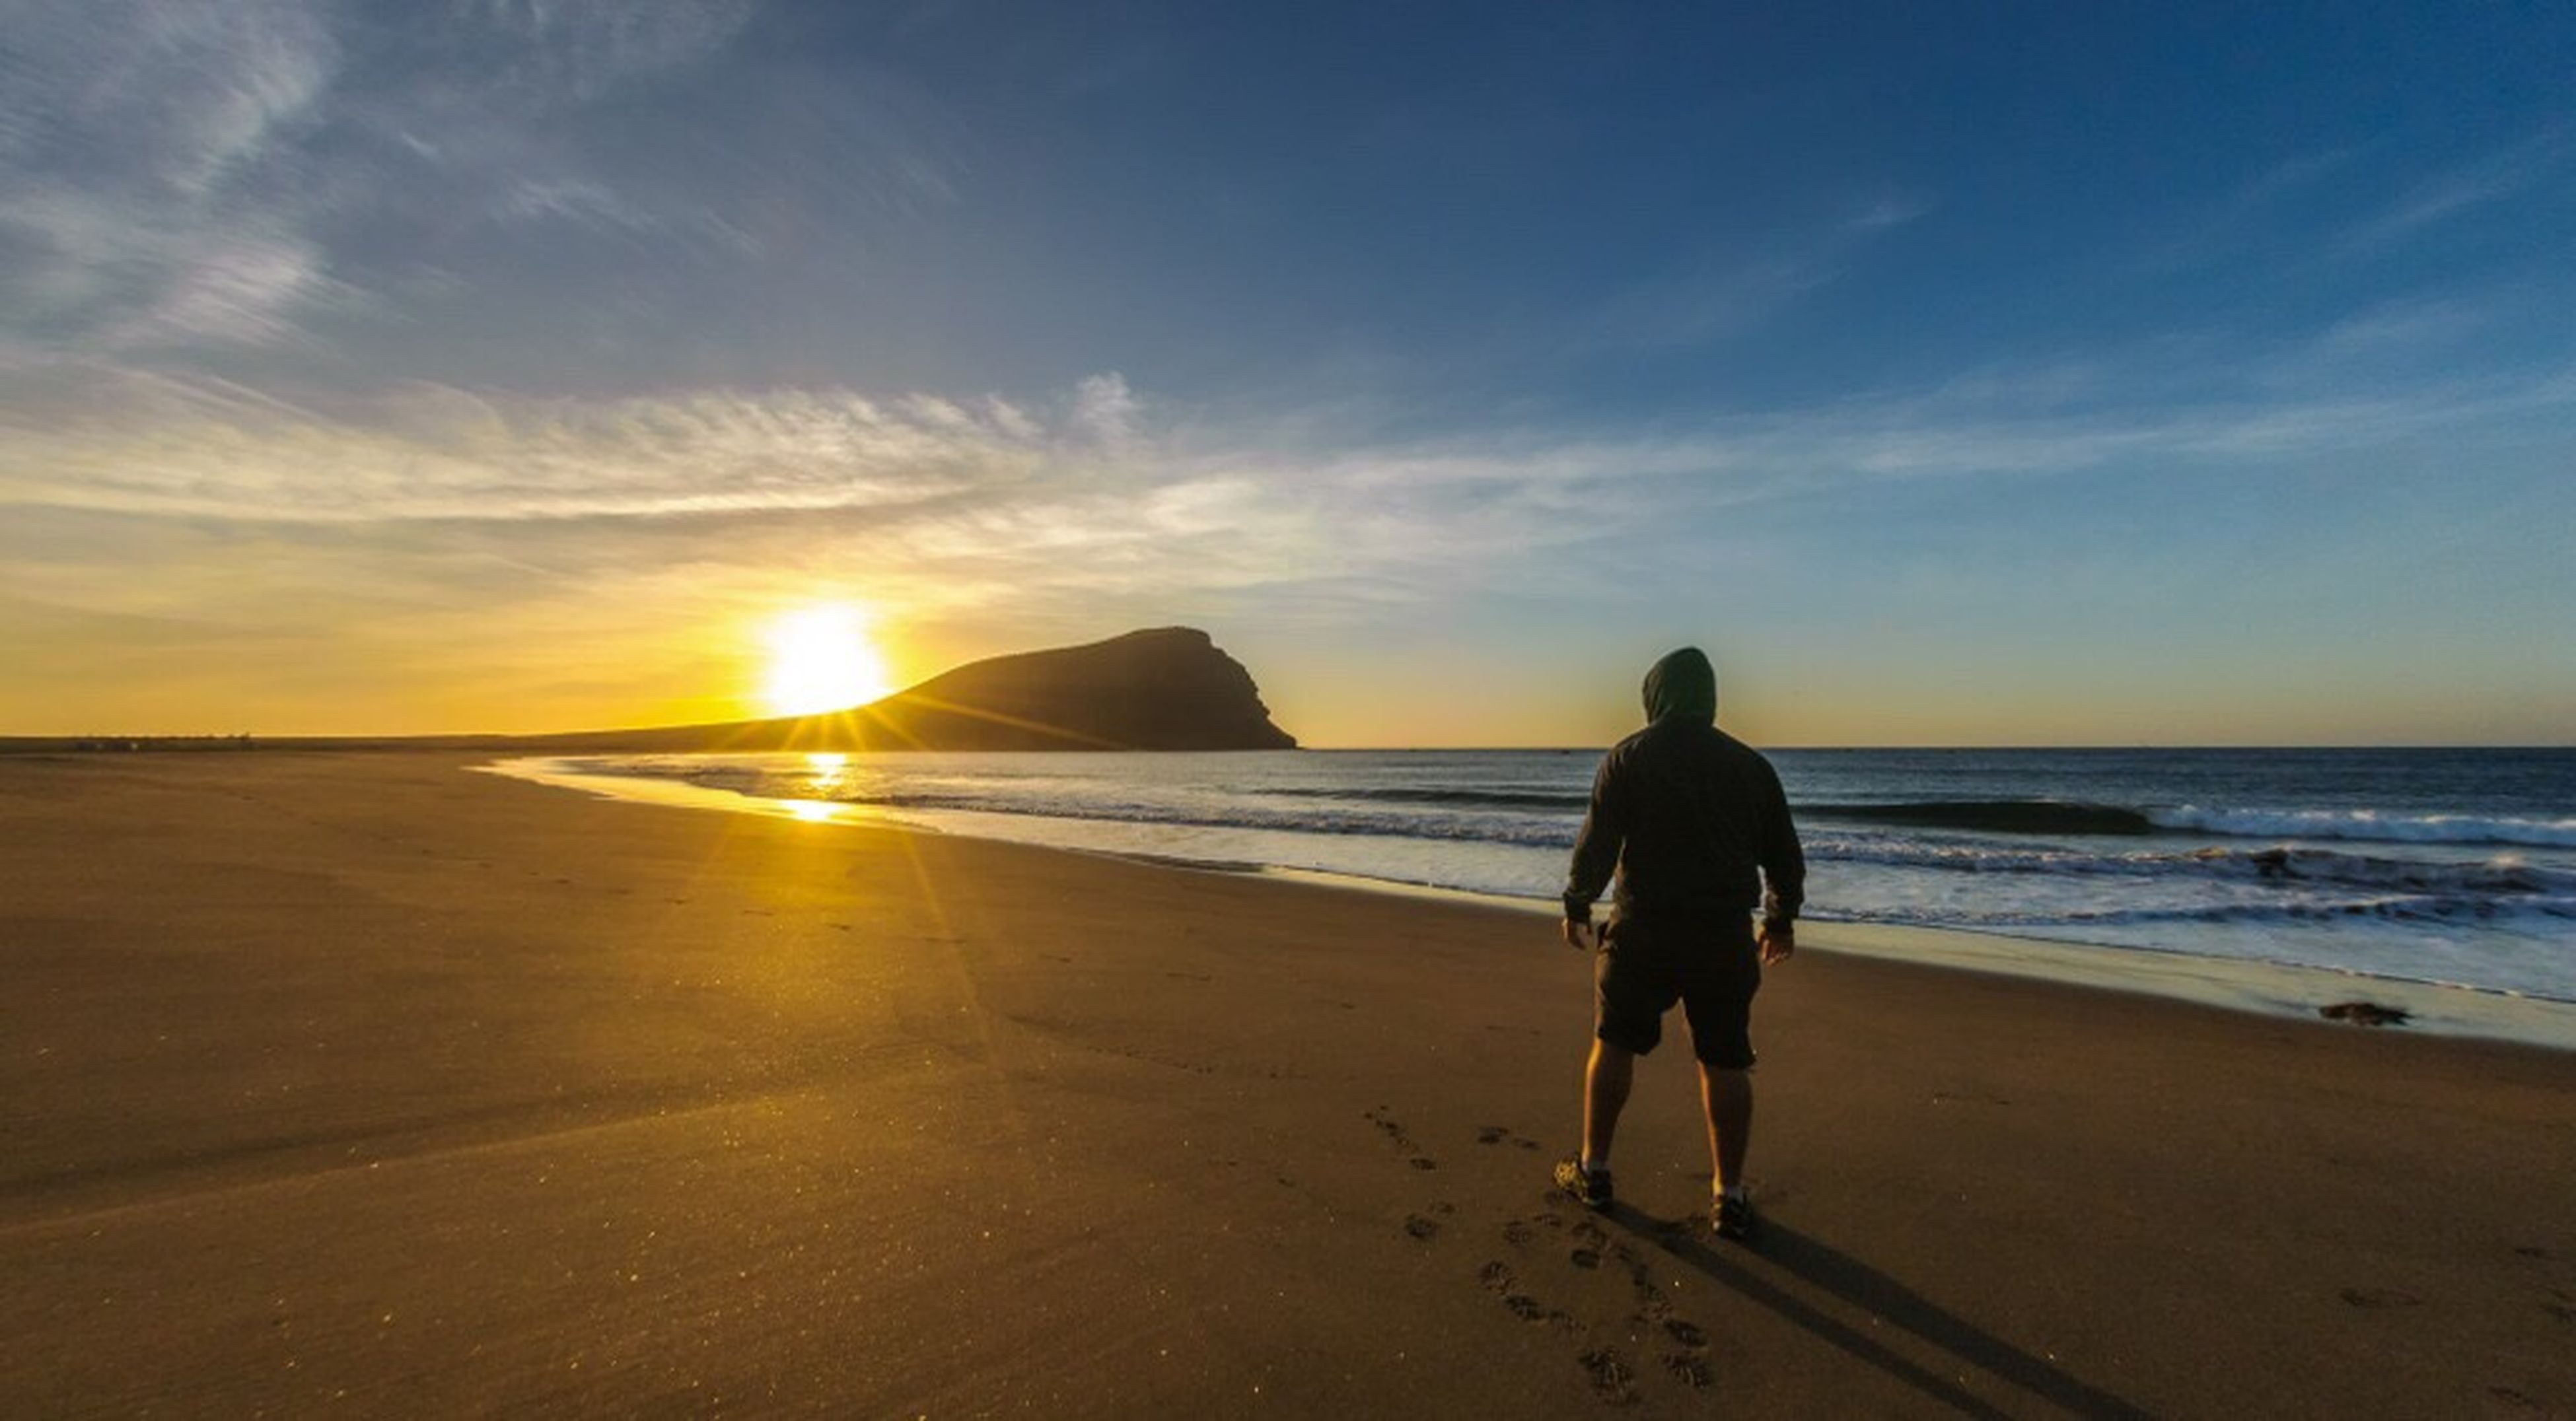 sea, beach, sand, sunset, rear view, sky, sun, beauty in nature, nature, horizon over water, full length, outdoors, people, one person, adult, silhouette, cloud - sky, vacations, scenics, adults only, only men, one man only, day